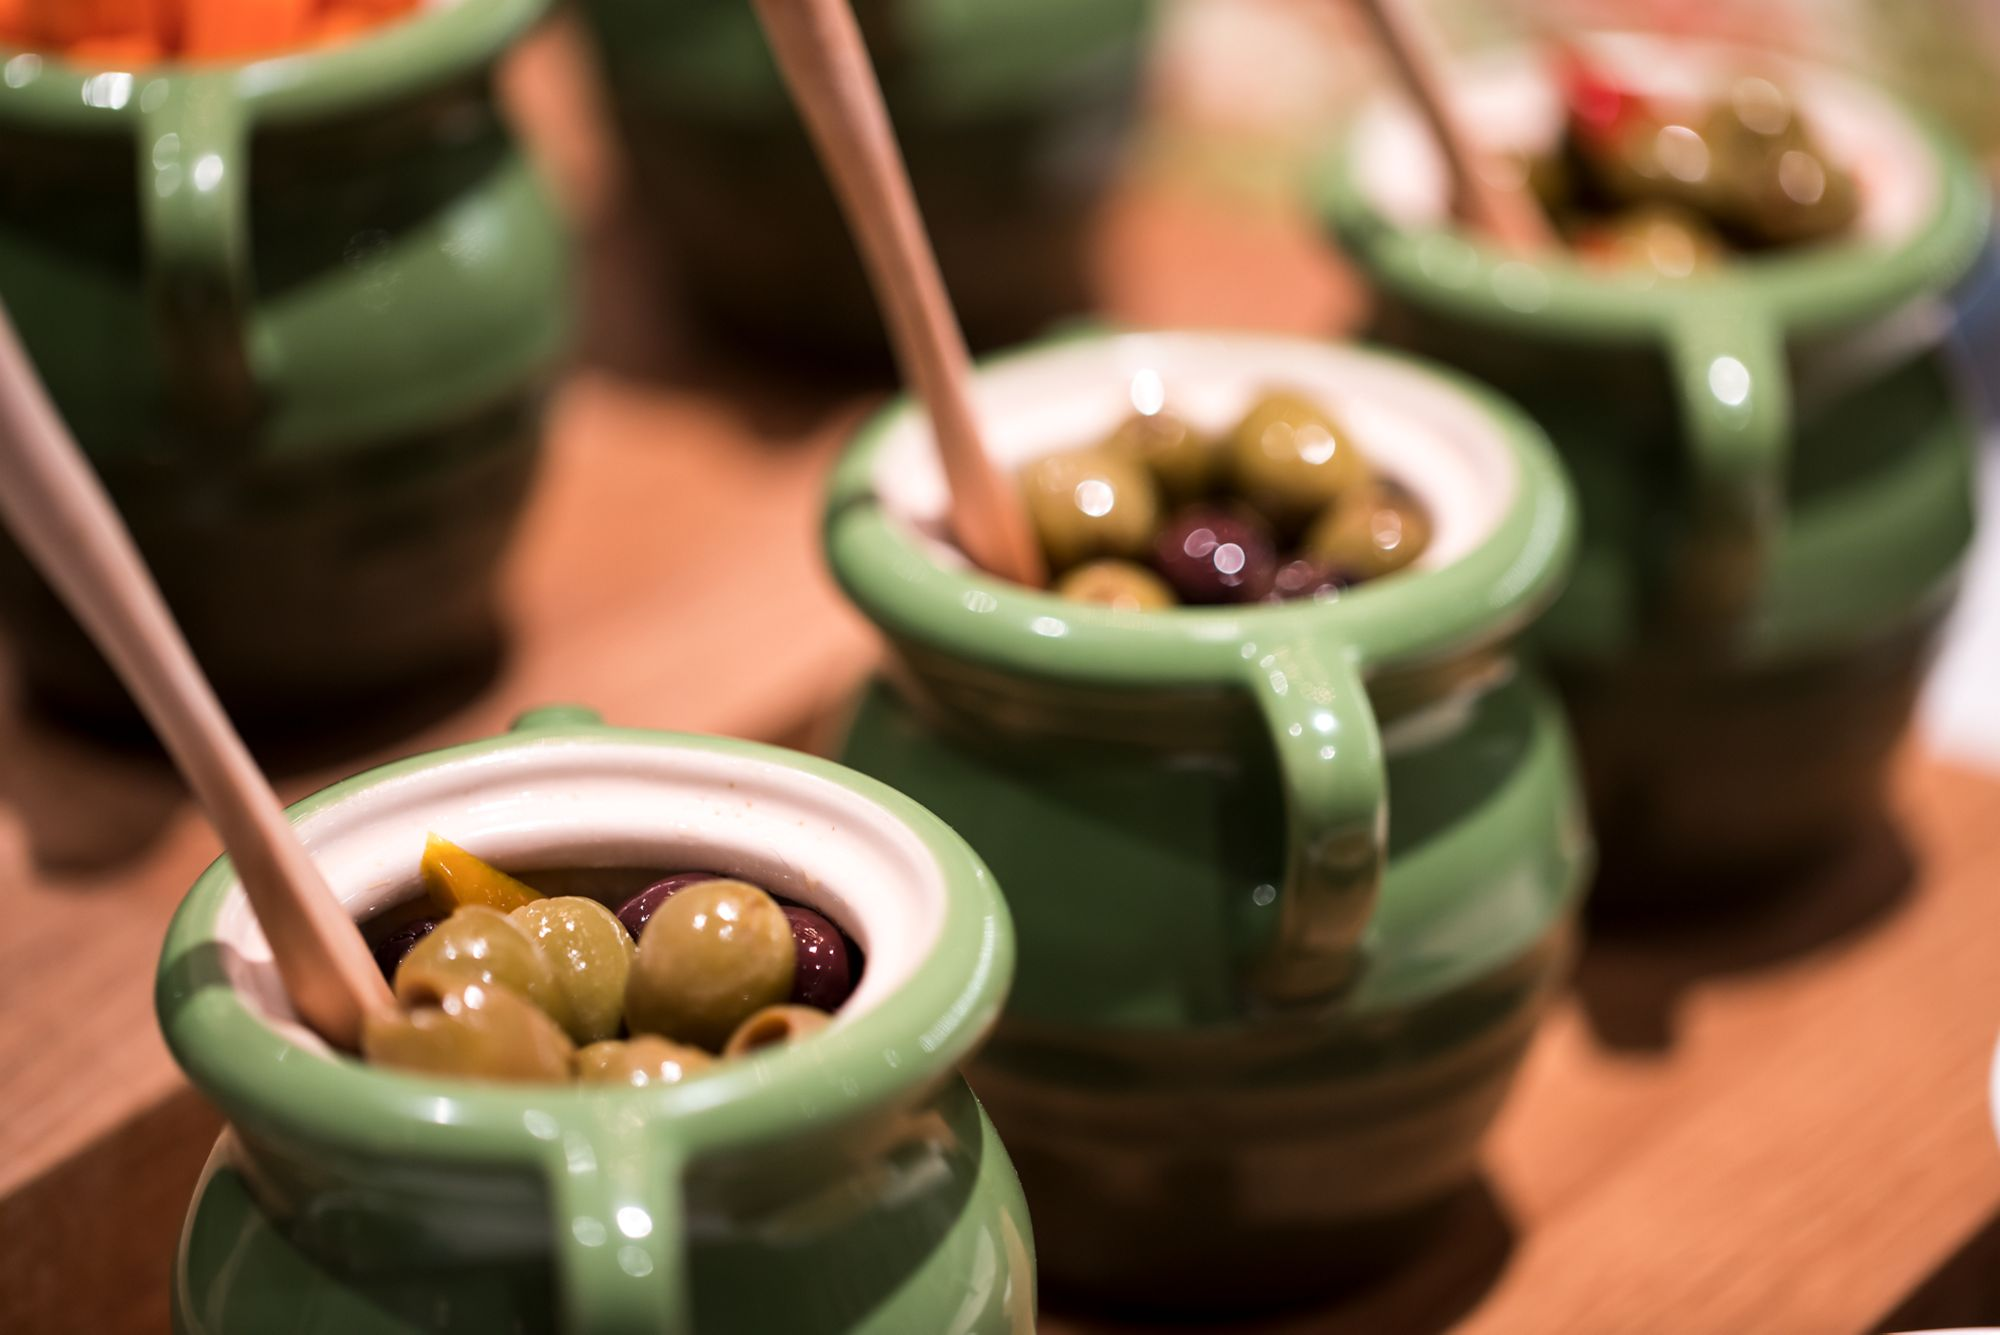 Ceramic pots filled with pitted olives